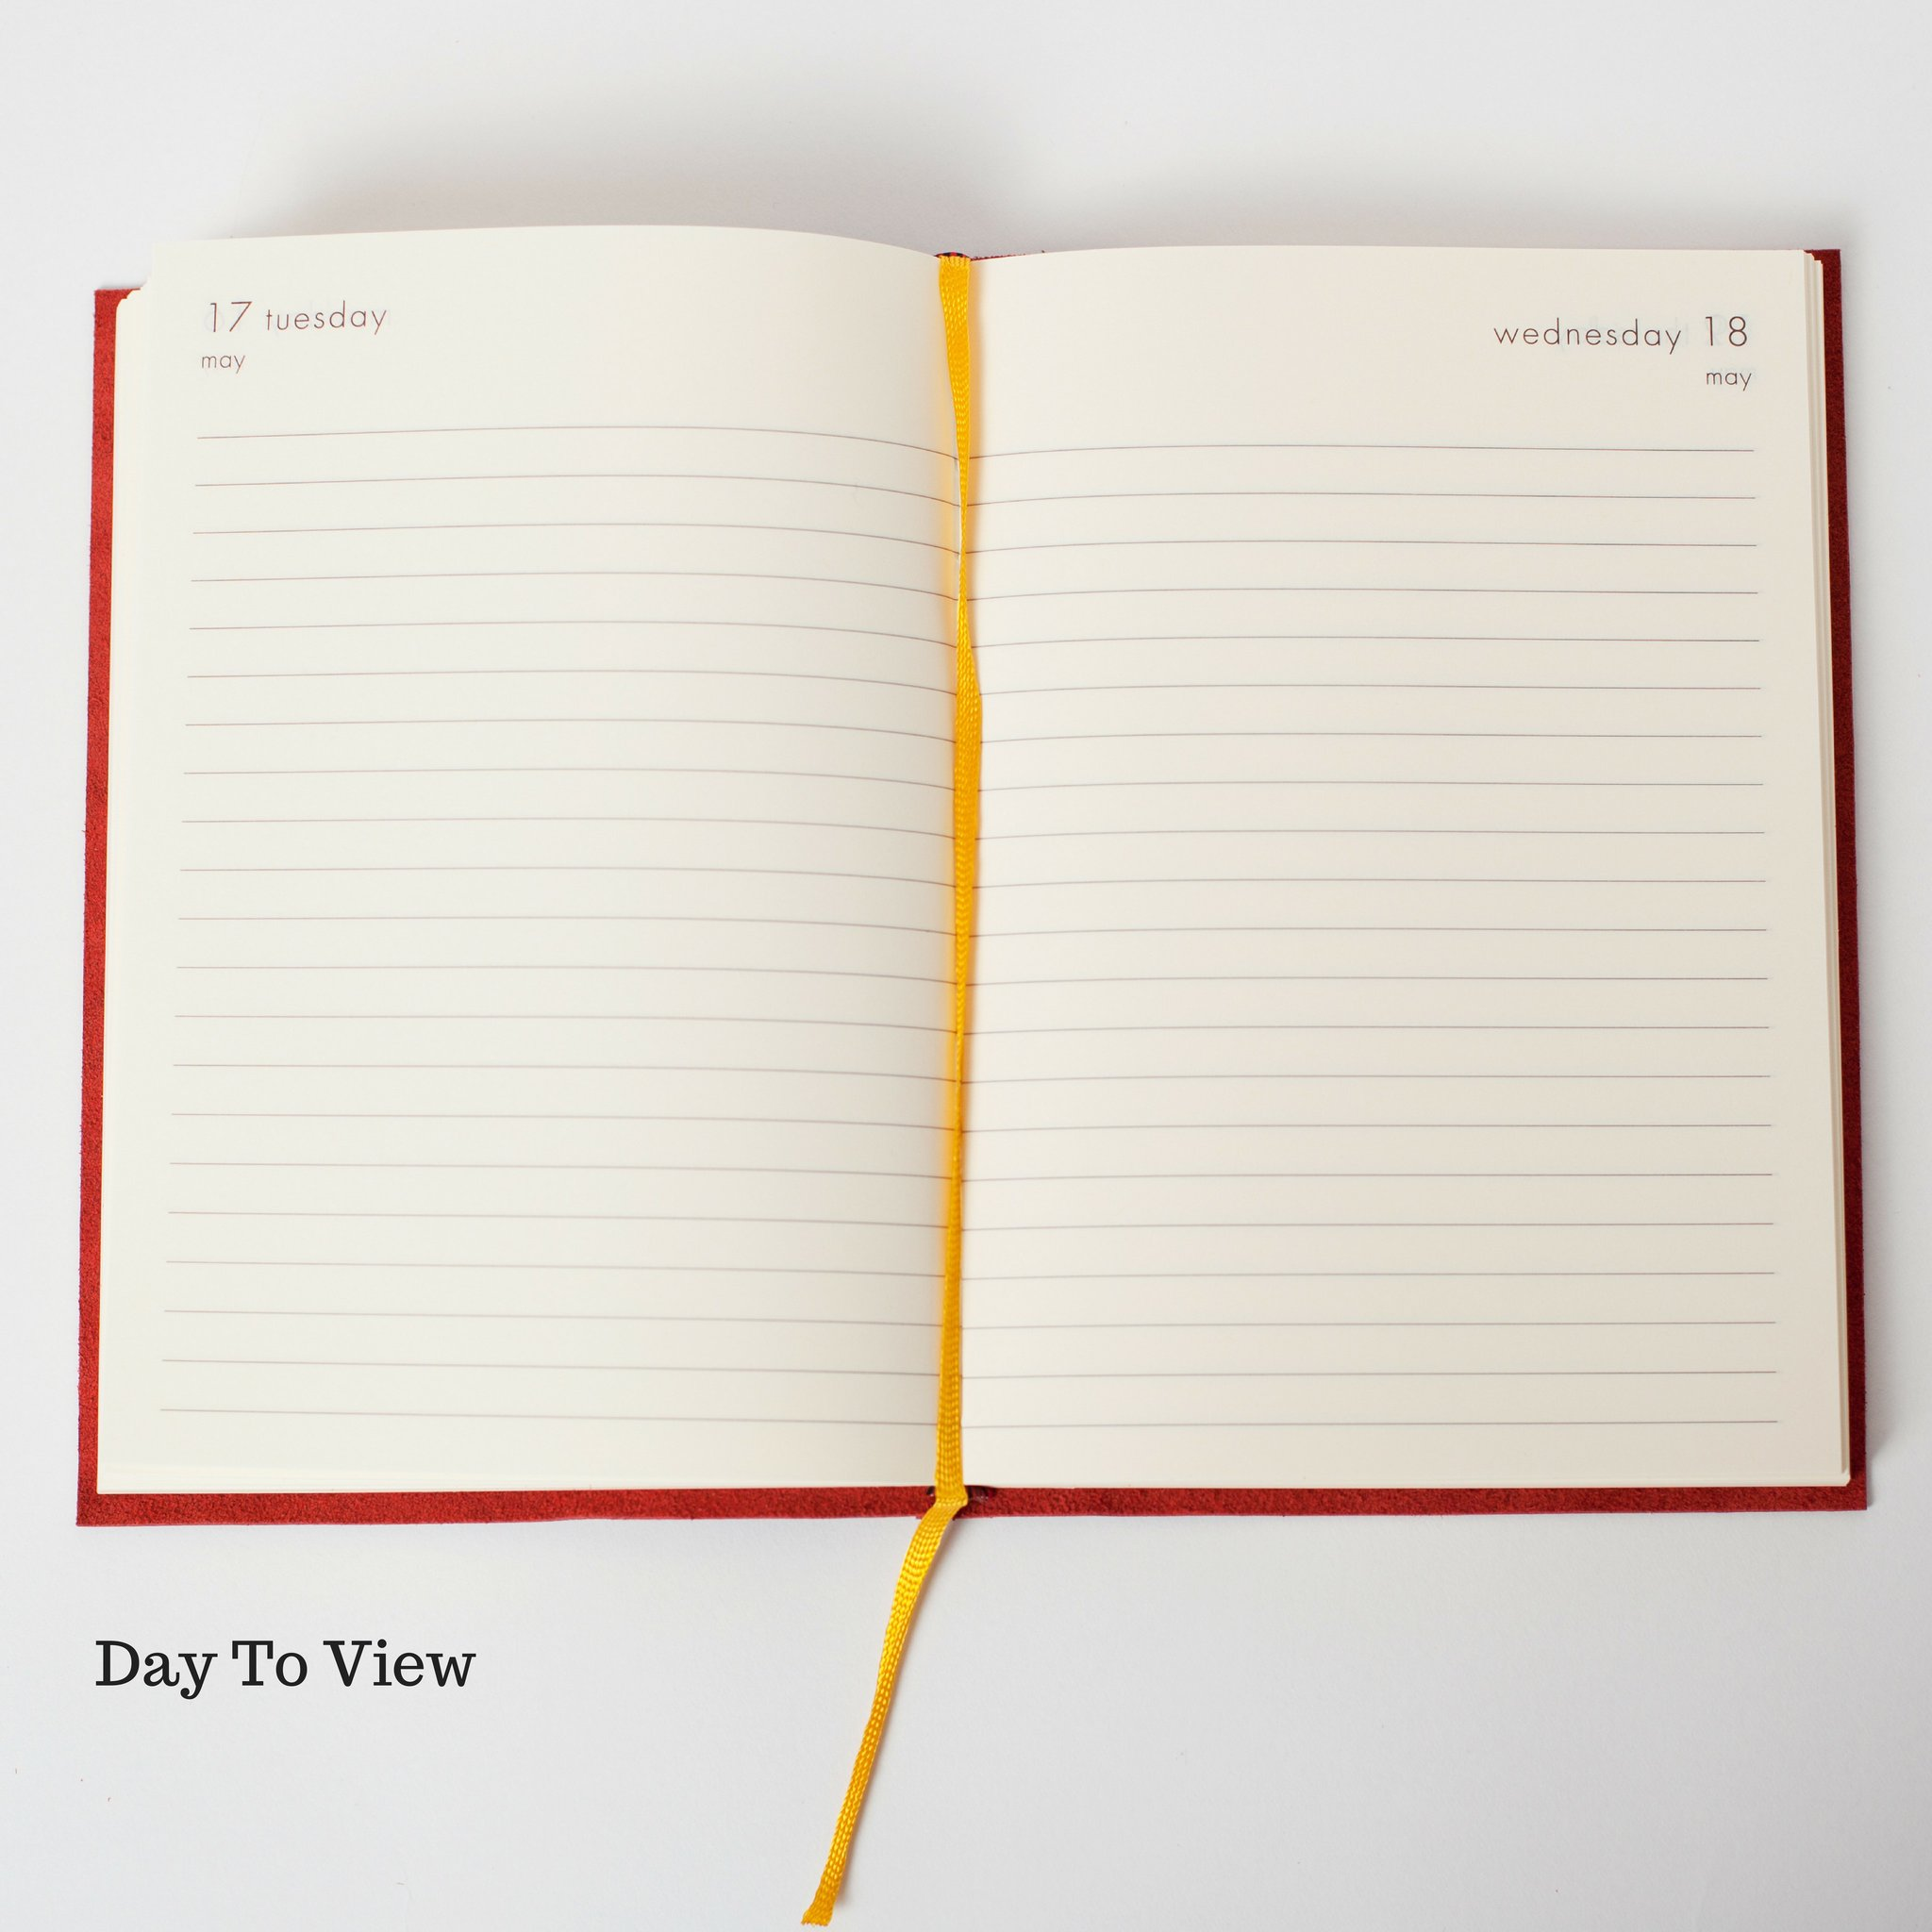 2018 DIARY - LIFE ACCORDING TO DIARY - BOLD AND CAPITAL LETTERS ...